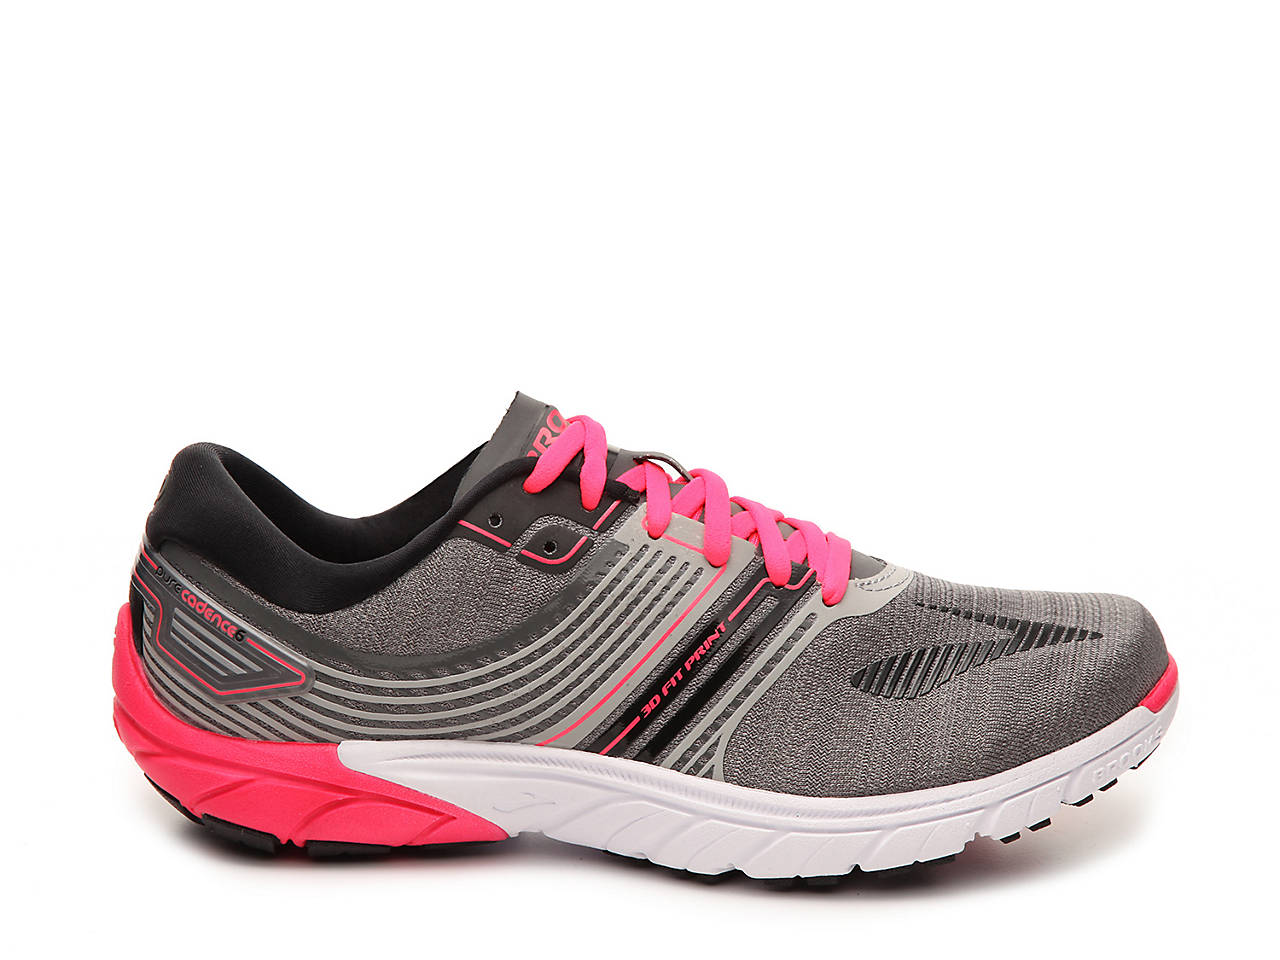 b40ee81536f Brooks PureCadence 6 Running Shoe - Women s Women s Shoes